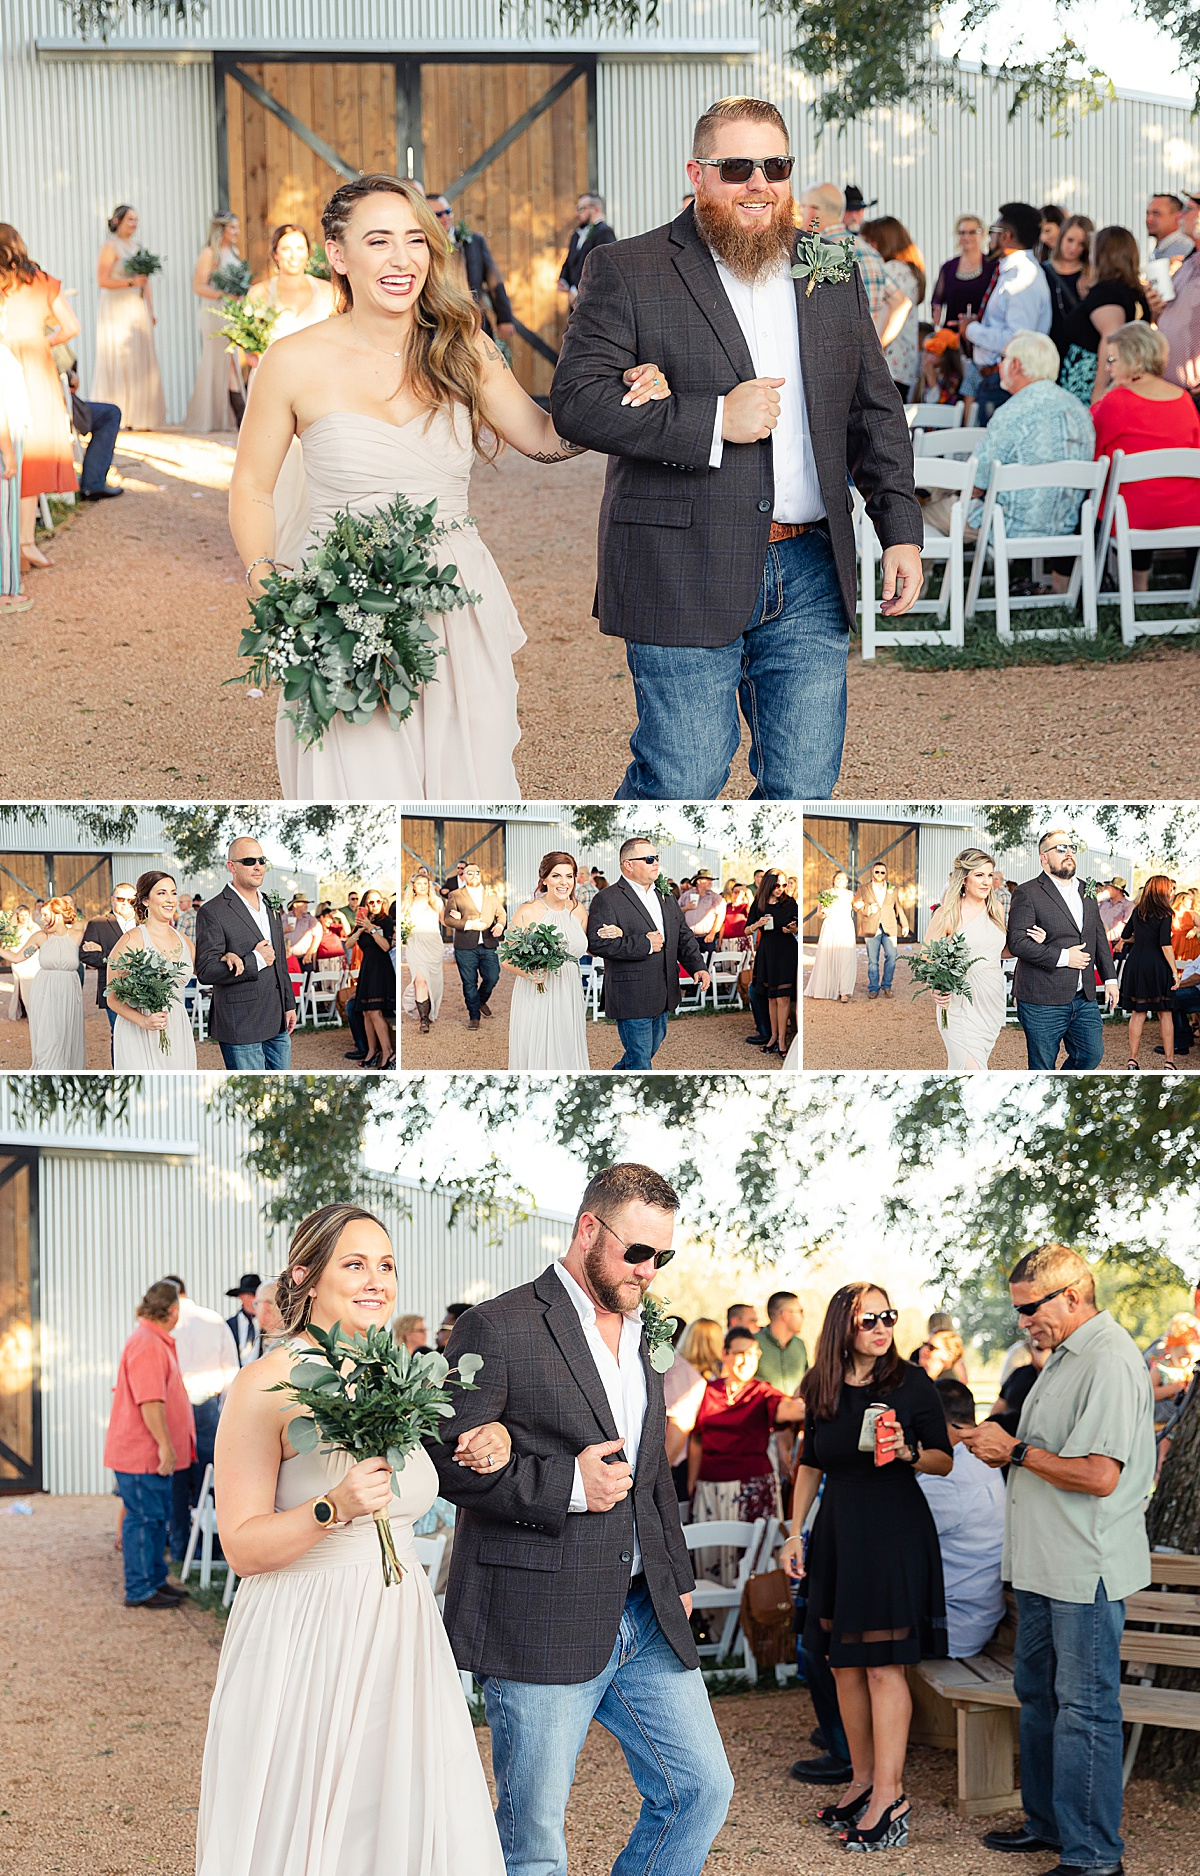 Rustic-Texas-Wedding-Hollow-Creek-Ranch-Carly-Barton-Photography_0111.jpg